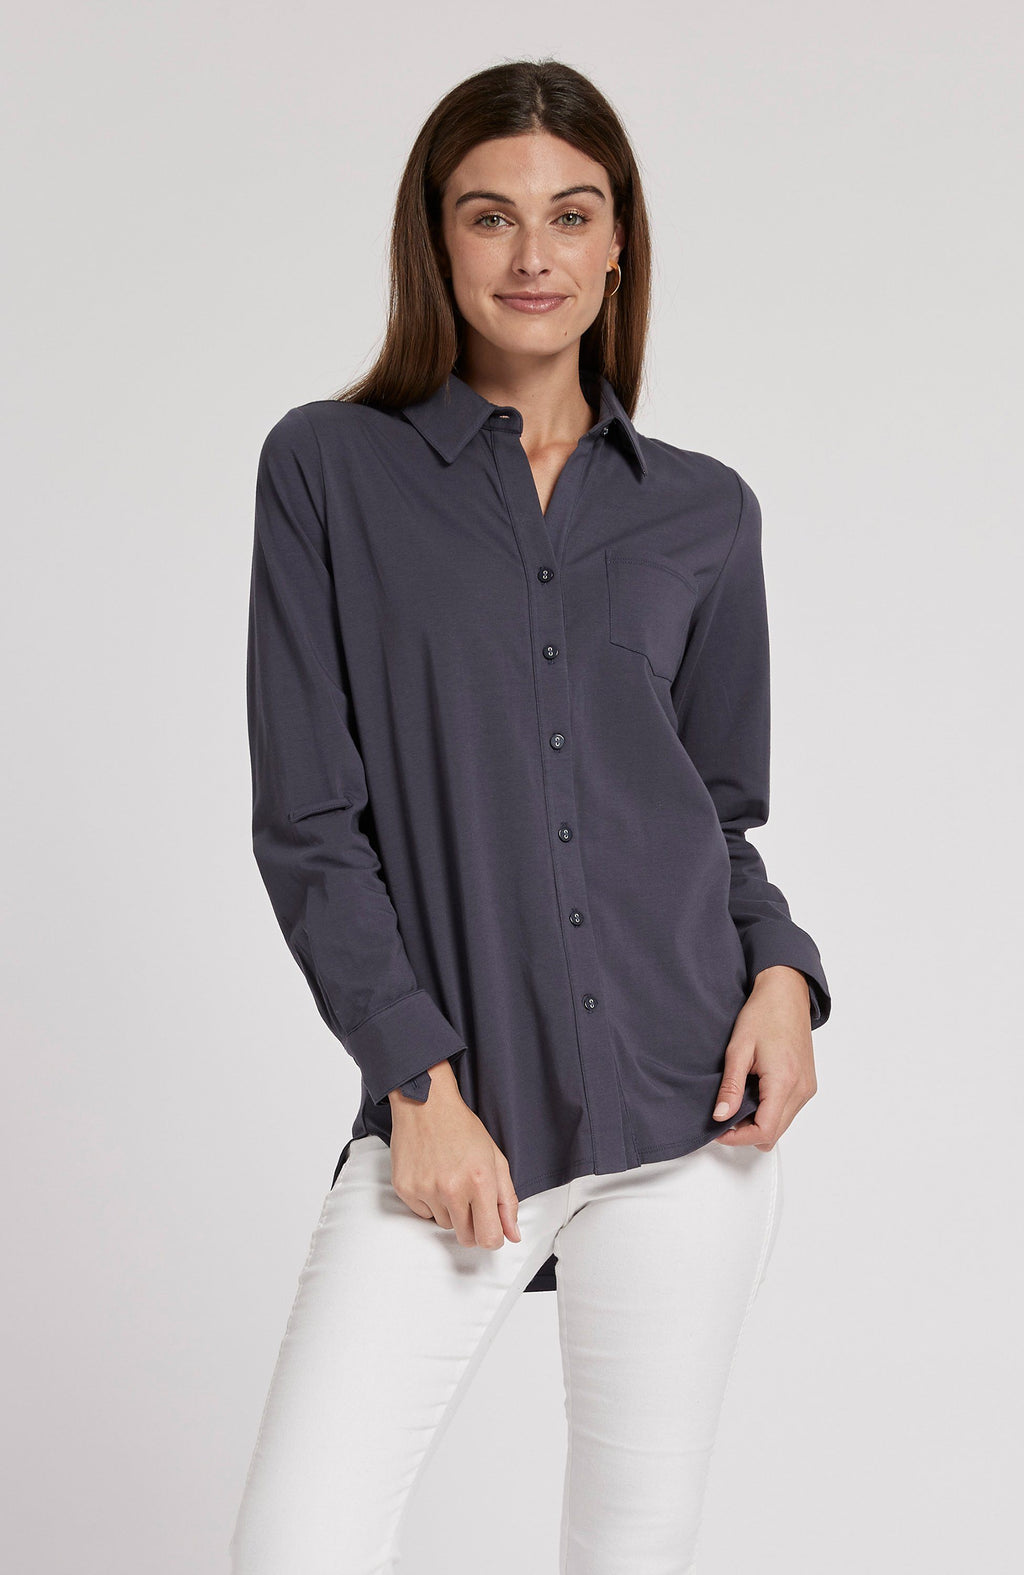 PATTI POLO - AMERICAN NAVY TylerBoe XS AMERICAN NAVY